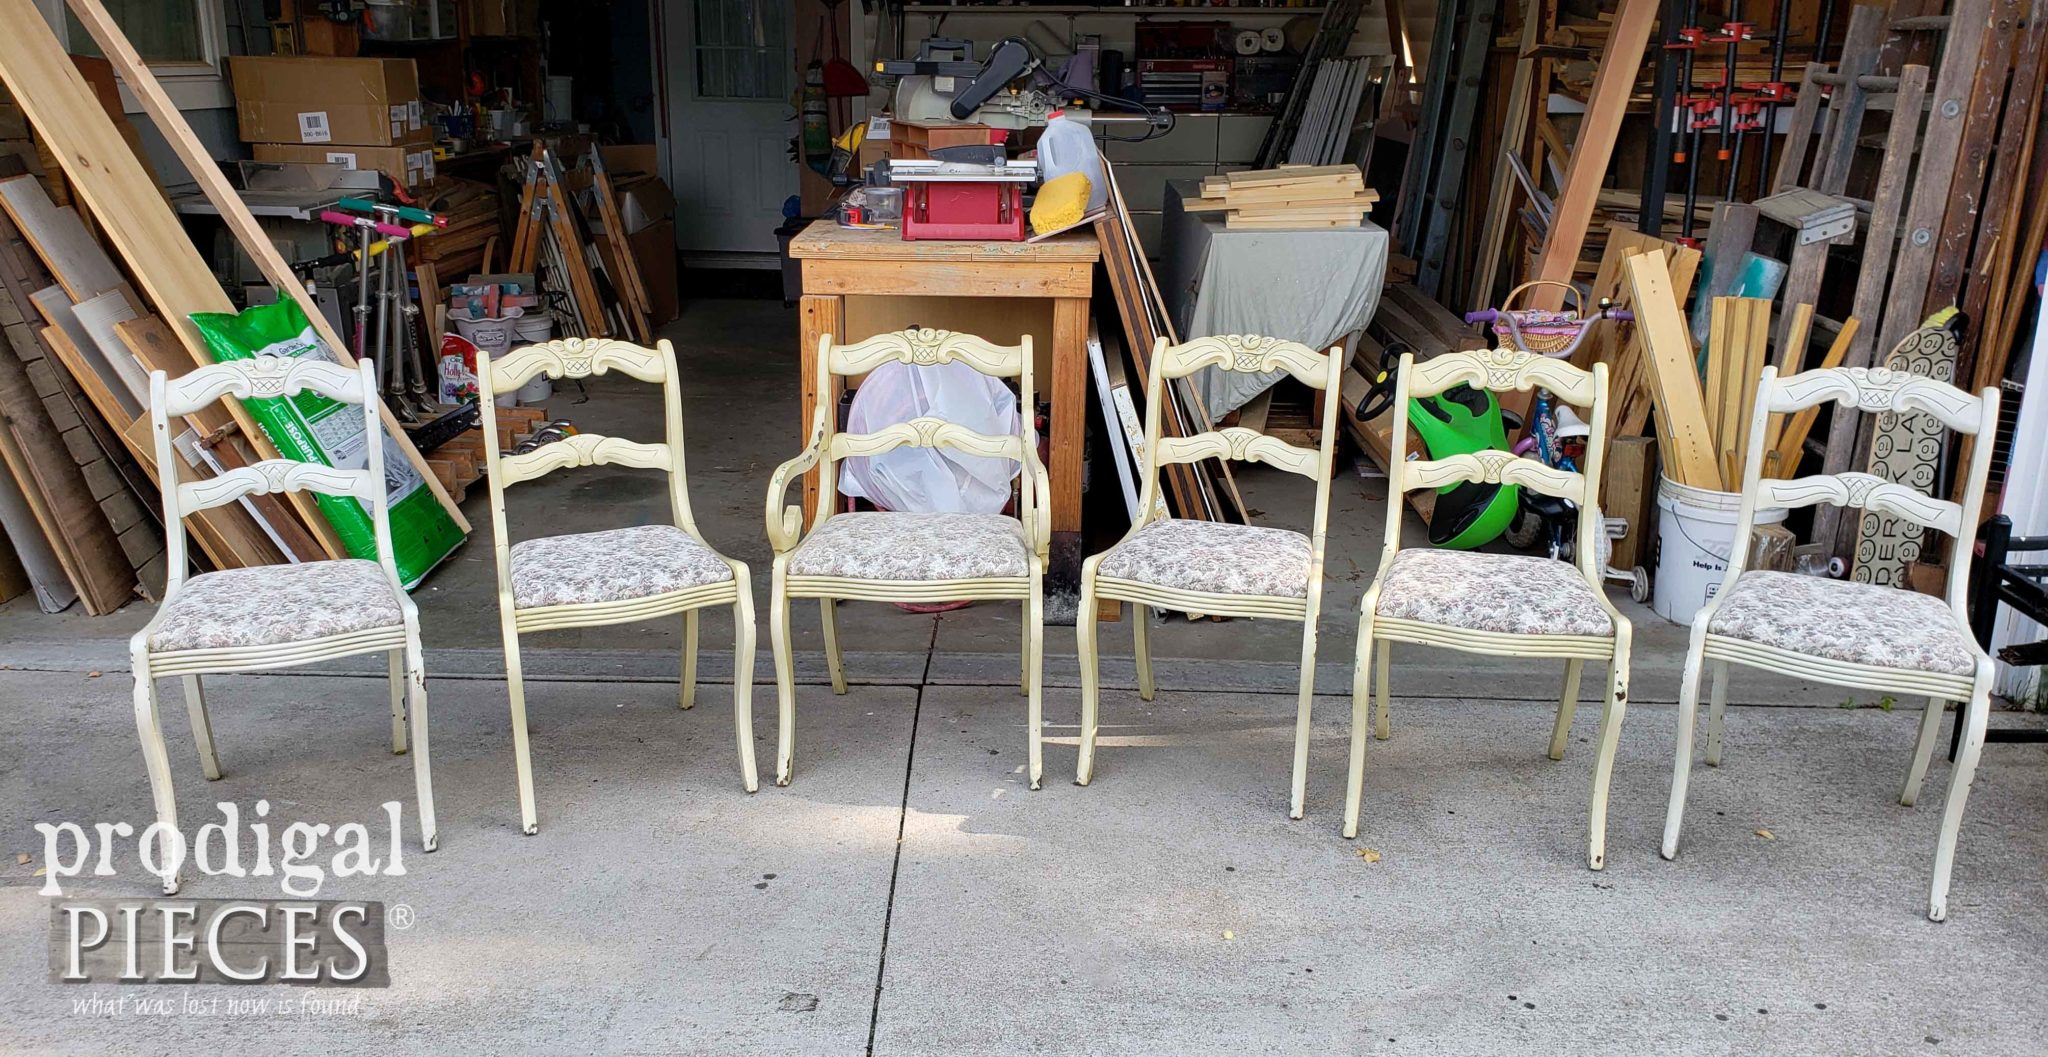 Vintage Rose Back Dining Chairs Found on the Curb | prodigalpieces.com